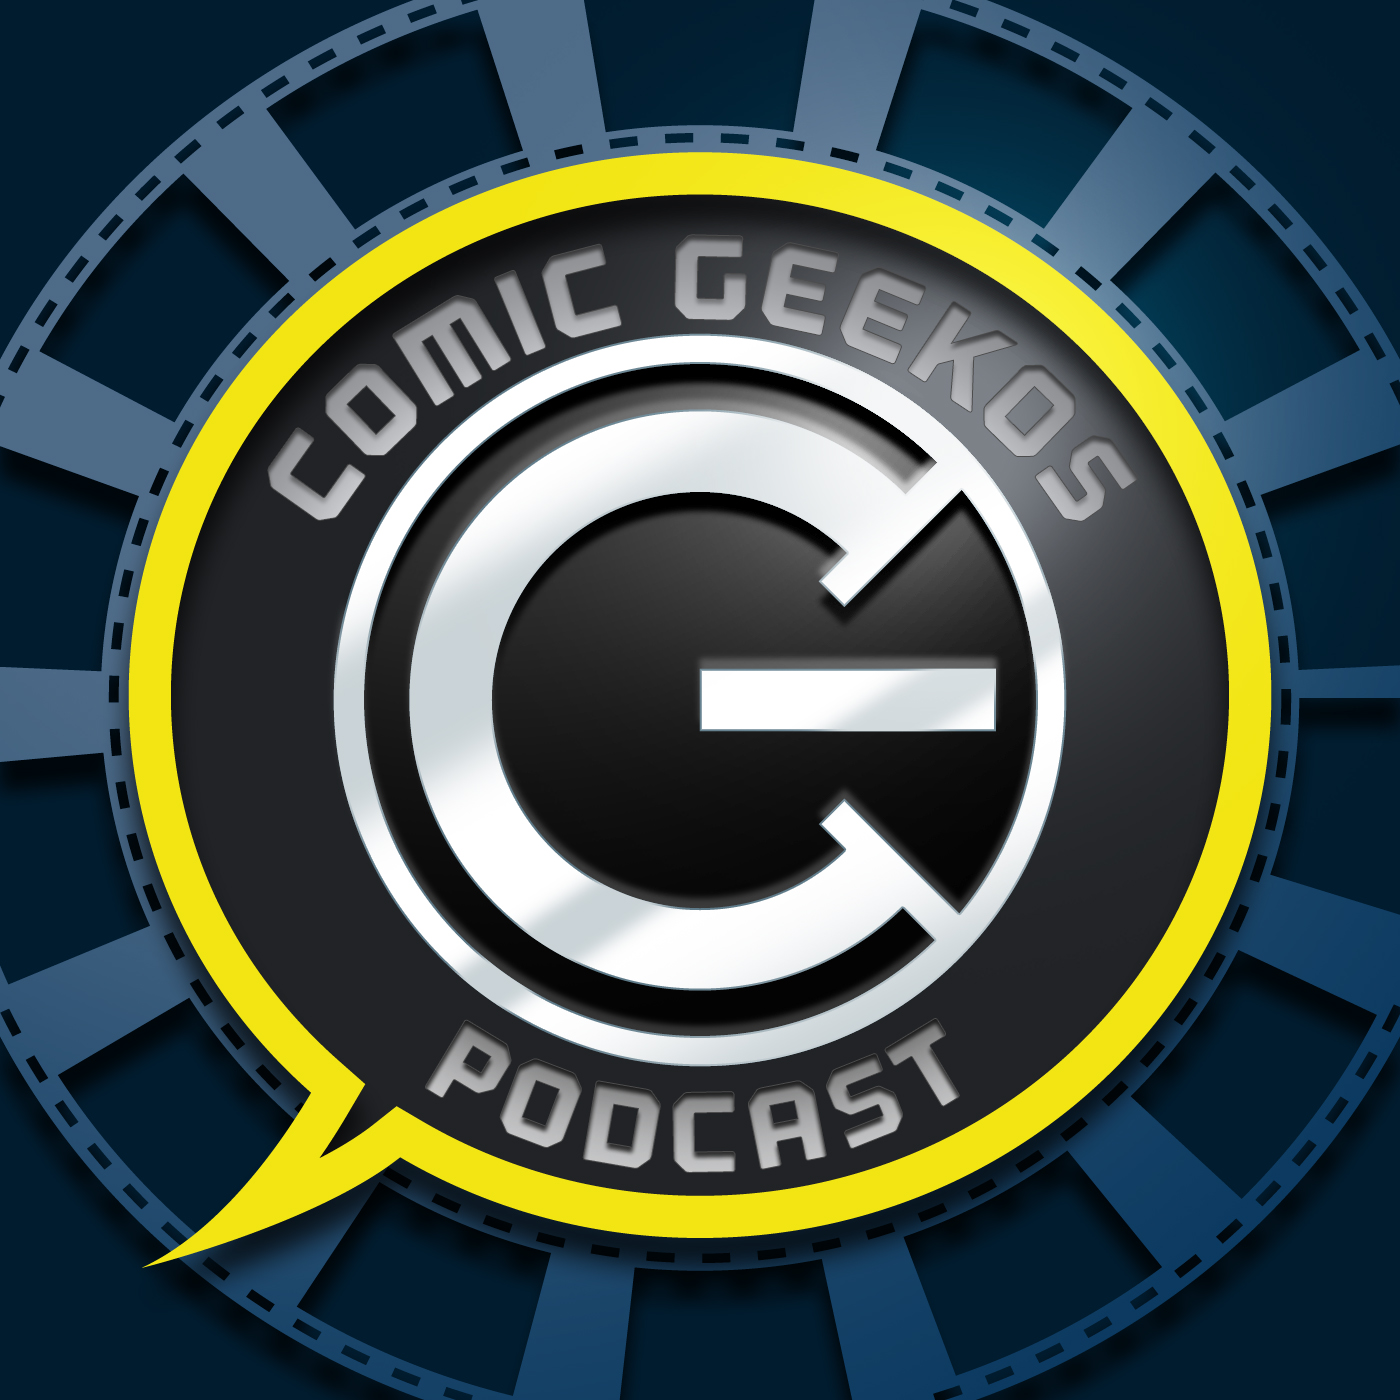 Comic Geekos Podcast